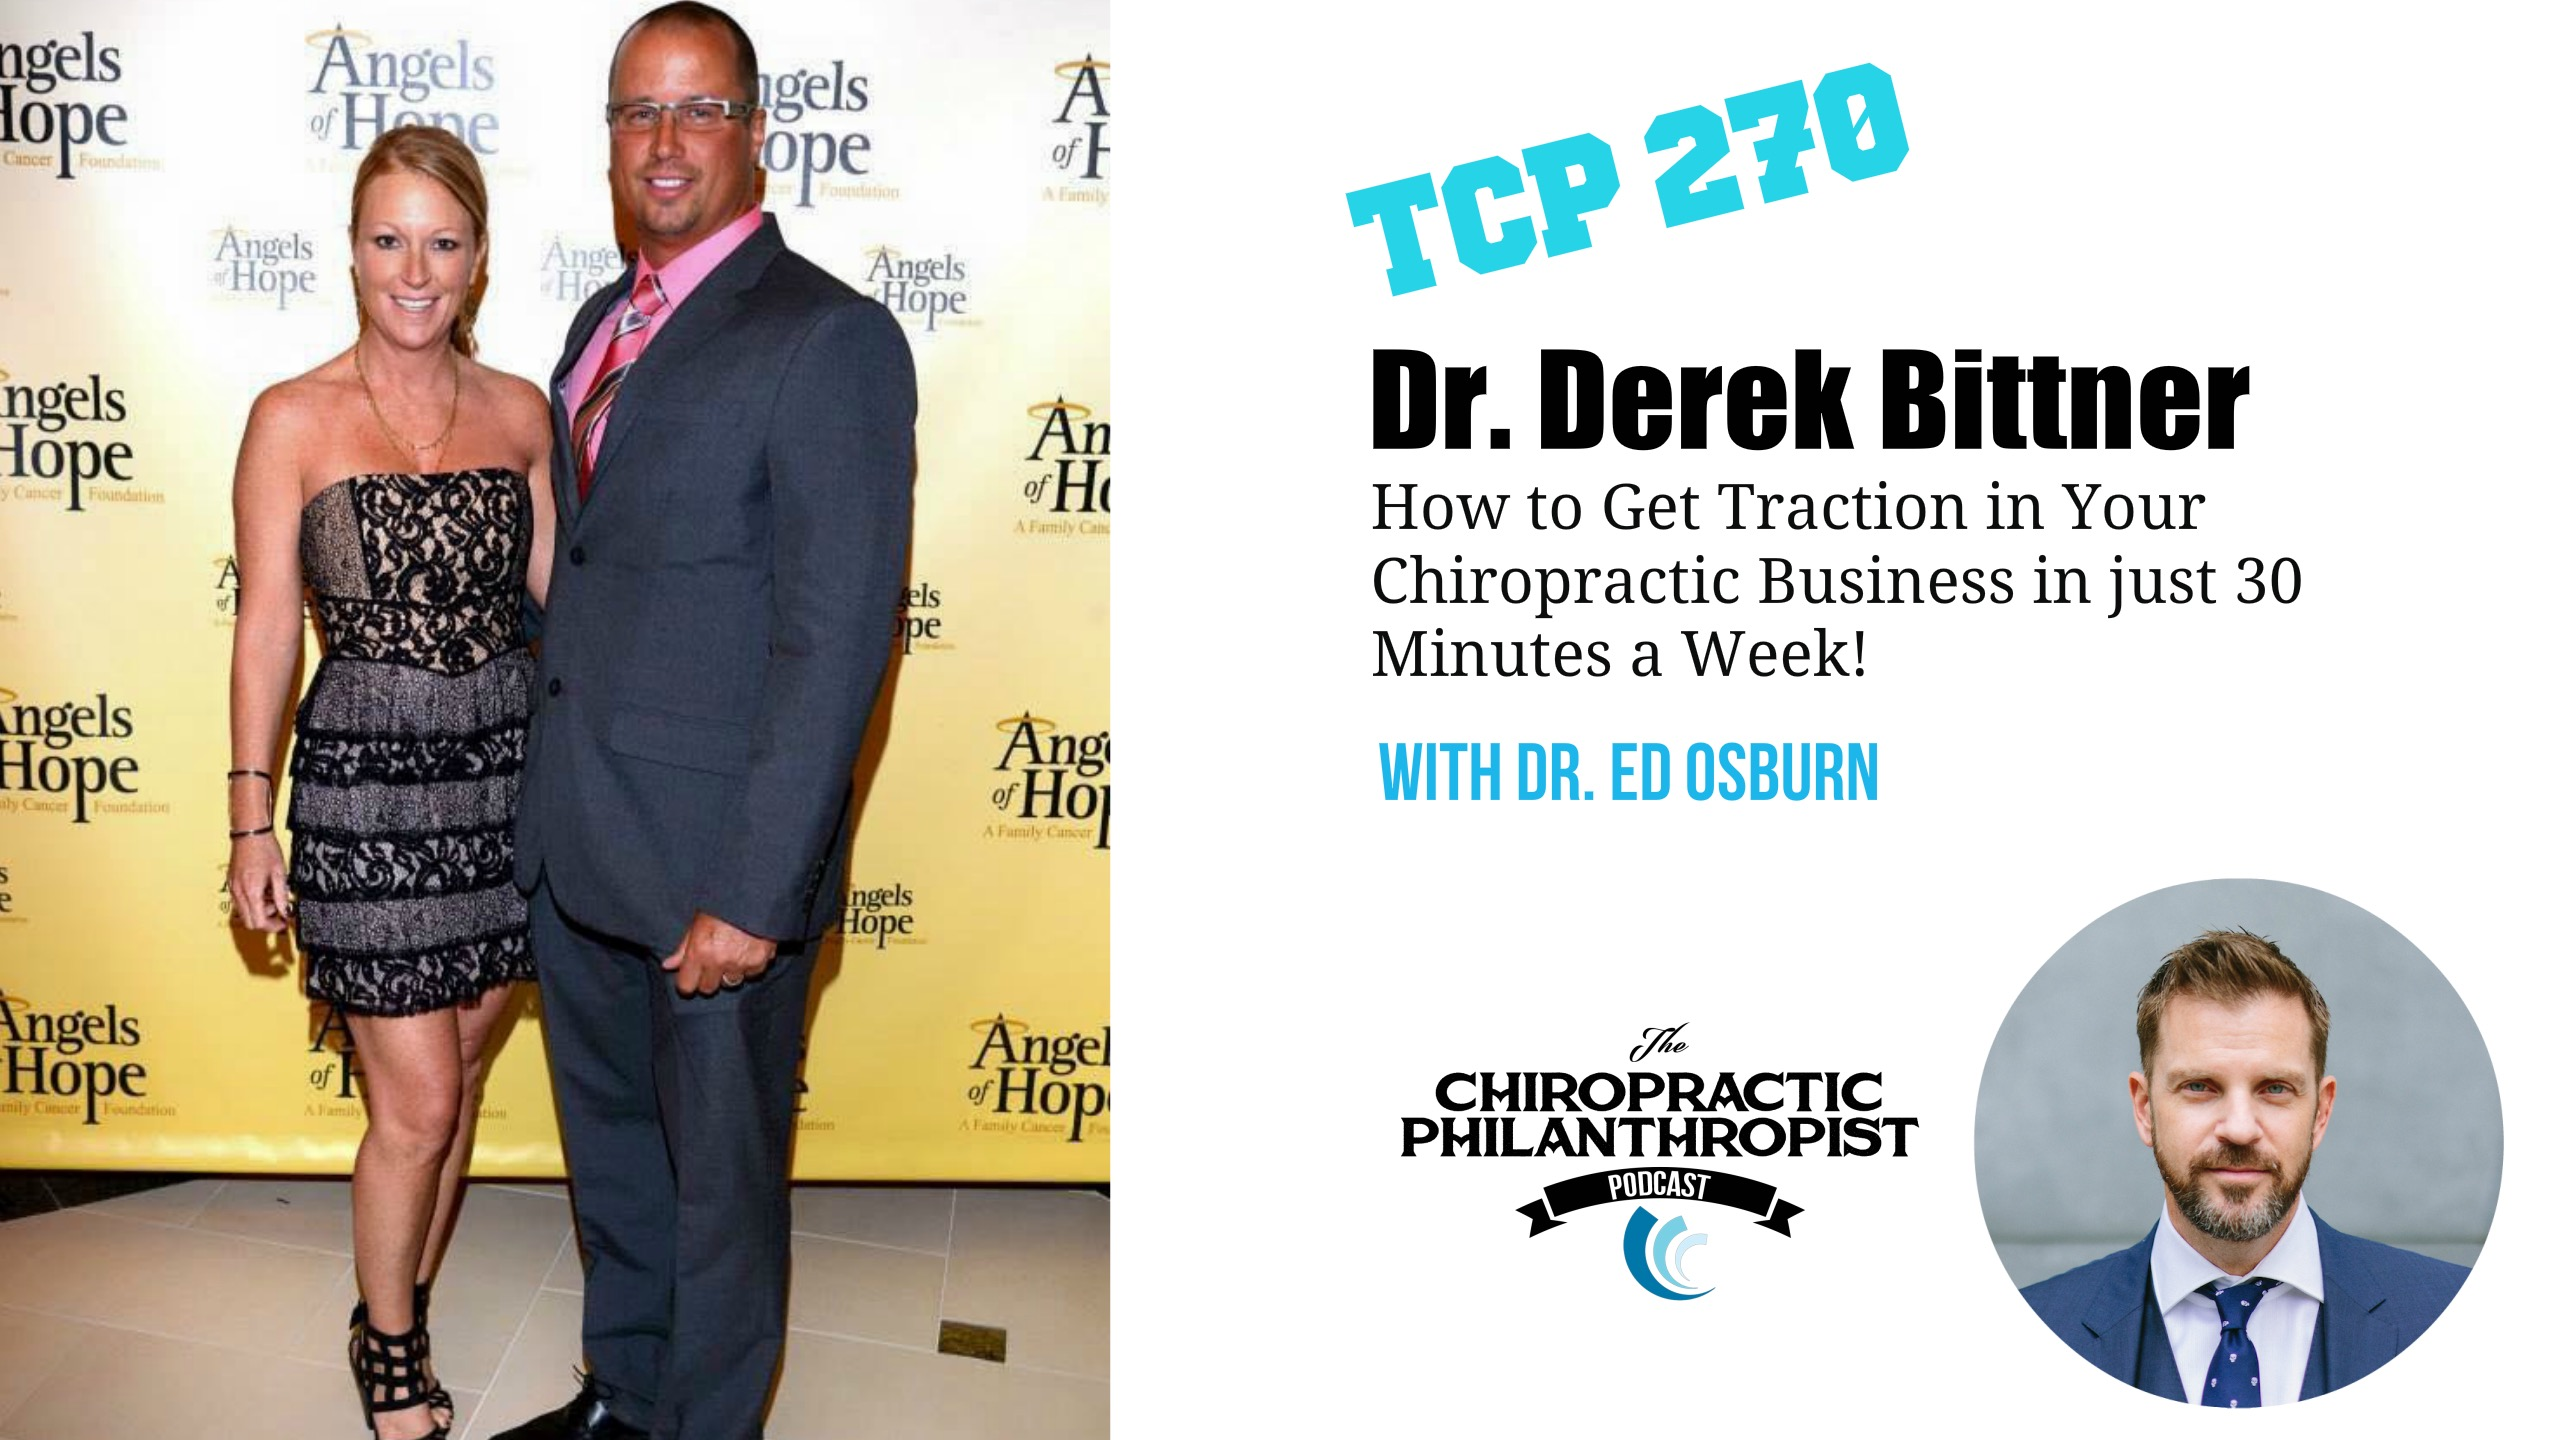 Dr. Derek Bittner | How to Get Traction in Your Chiropractic Business in just 30 Minutes a Week! 270: Dr. Derek Bittner | How to Get Traction in Your Chiropractic Business in just 30 Minutes a Week!